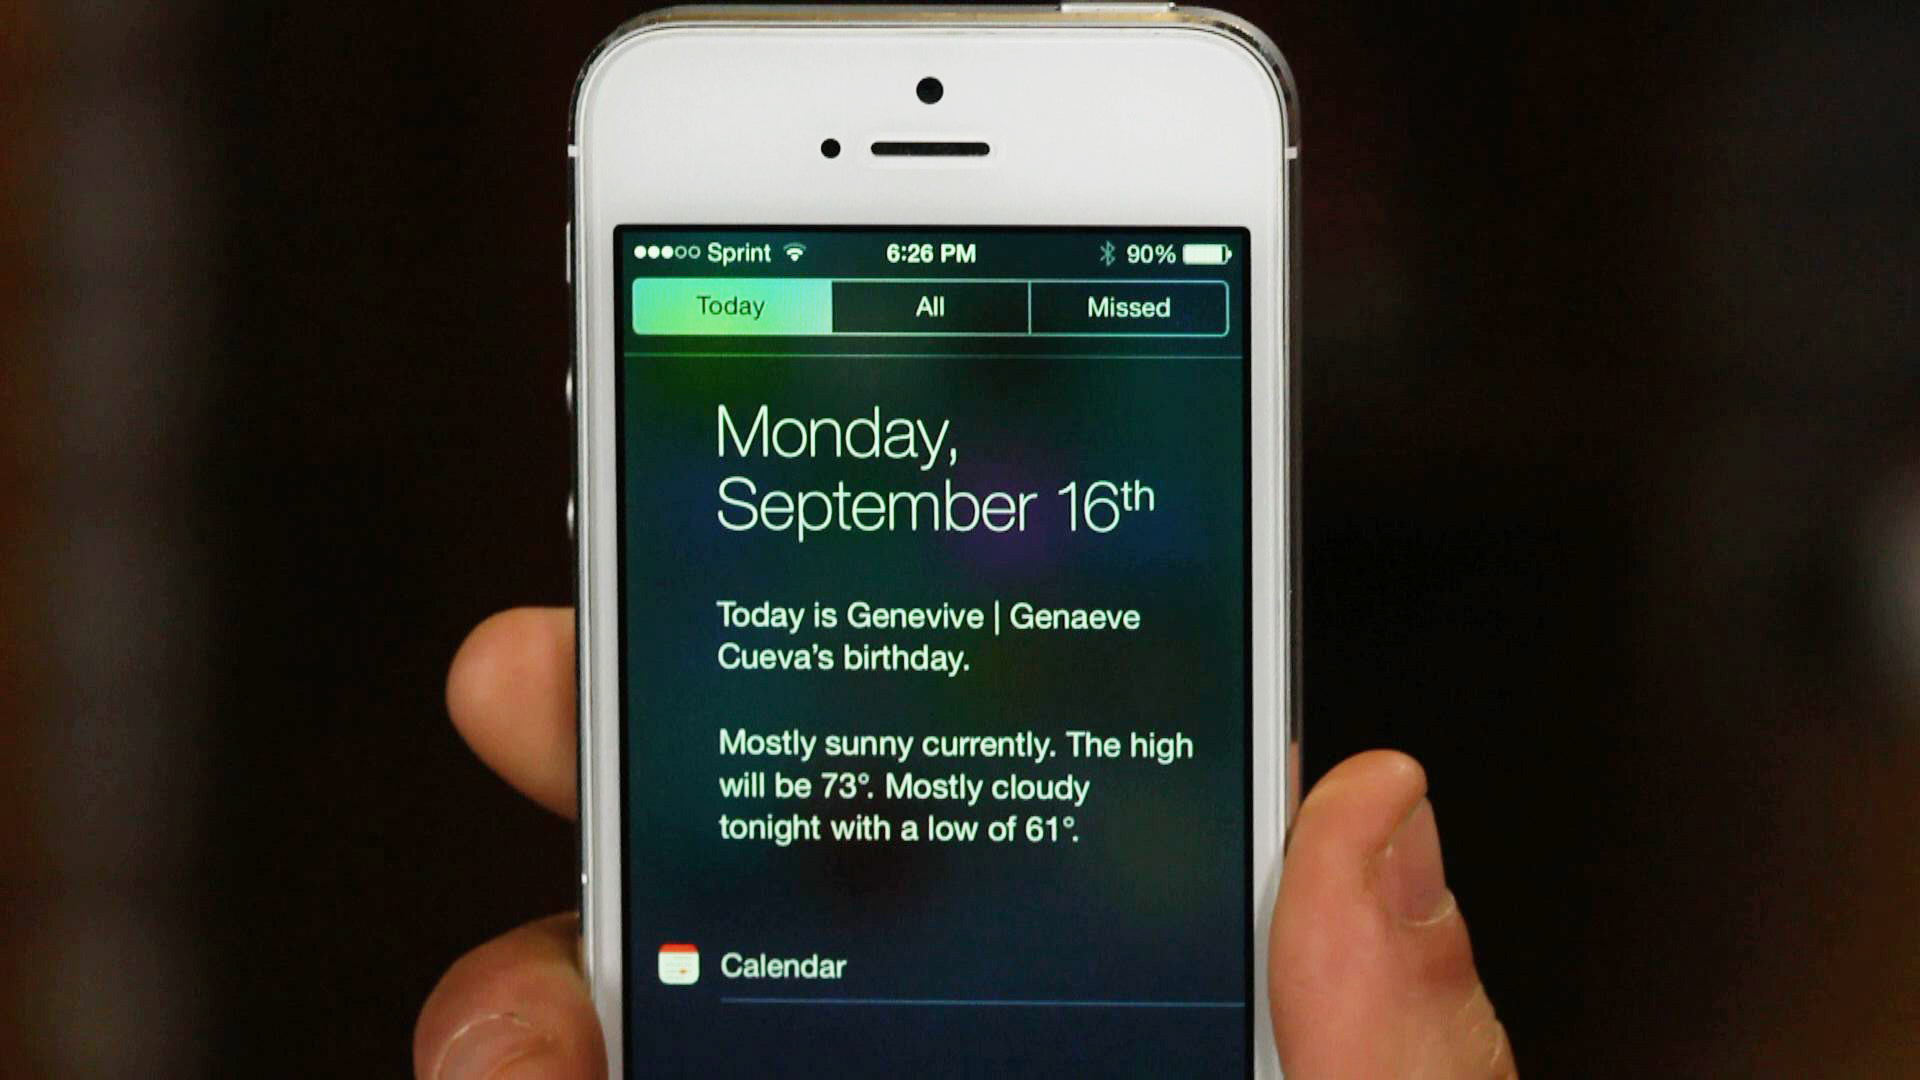 How to customize the Notification Center in iOS 7